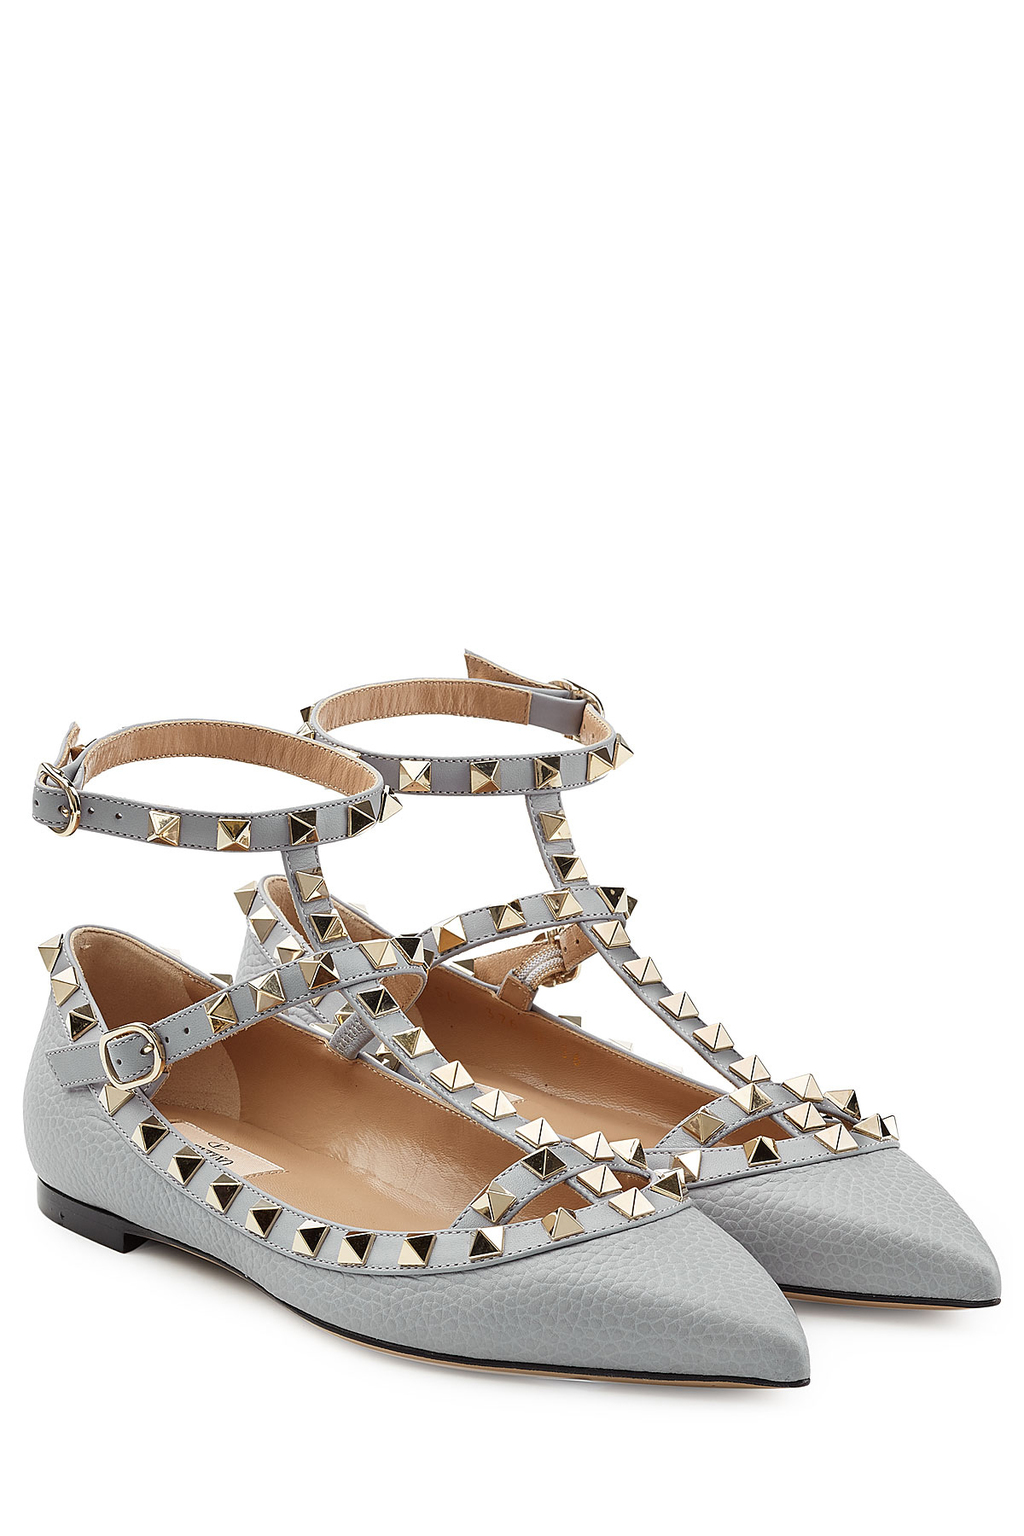 Rockstud Leather Flats Grey - predominant colour: light grey; occasions: casual, creative work; material: leather; heel height: flat; embellishment: studs; ankle detail: ankle strap; toe: pointed toe; style: ballerinas / pumps; finish: plain; pattern: plain; wardrobe: basic; season: a/w 2016